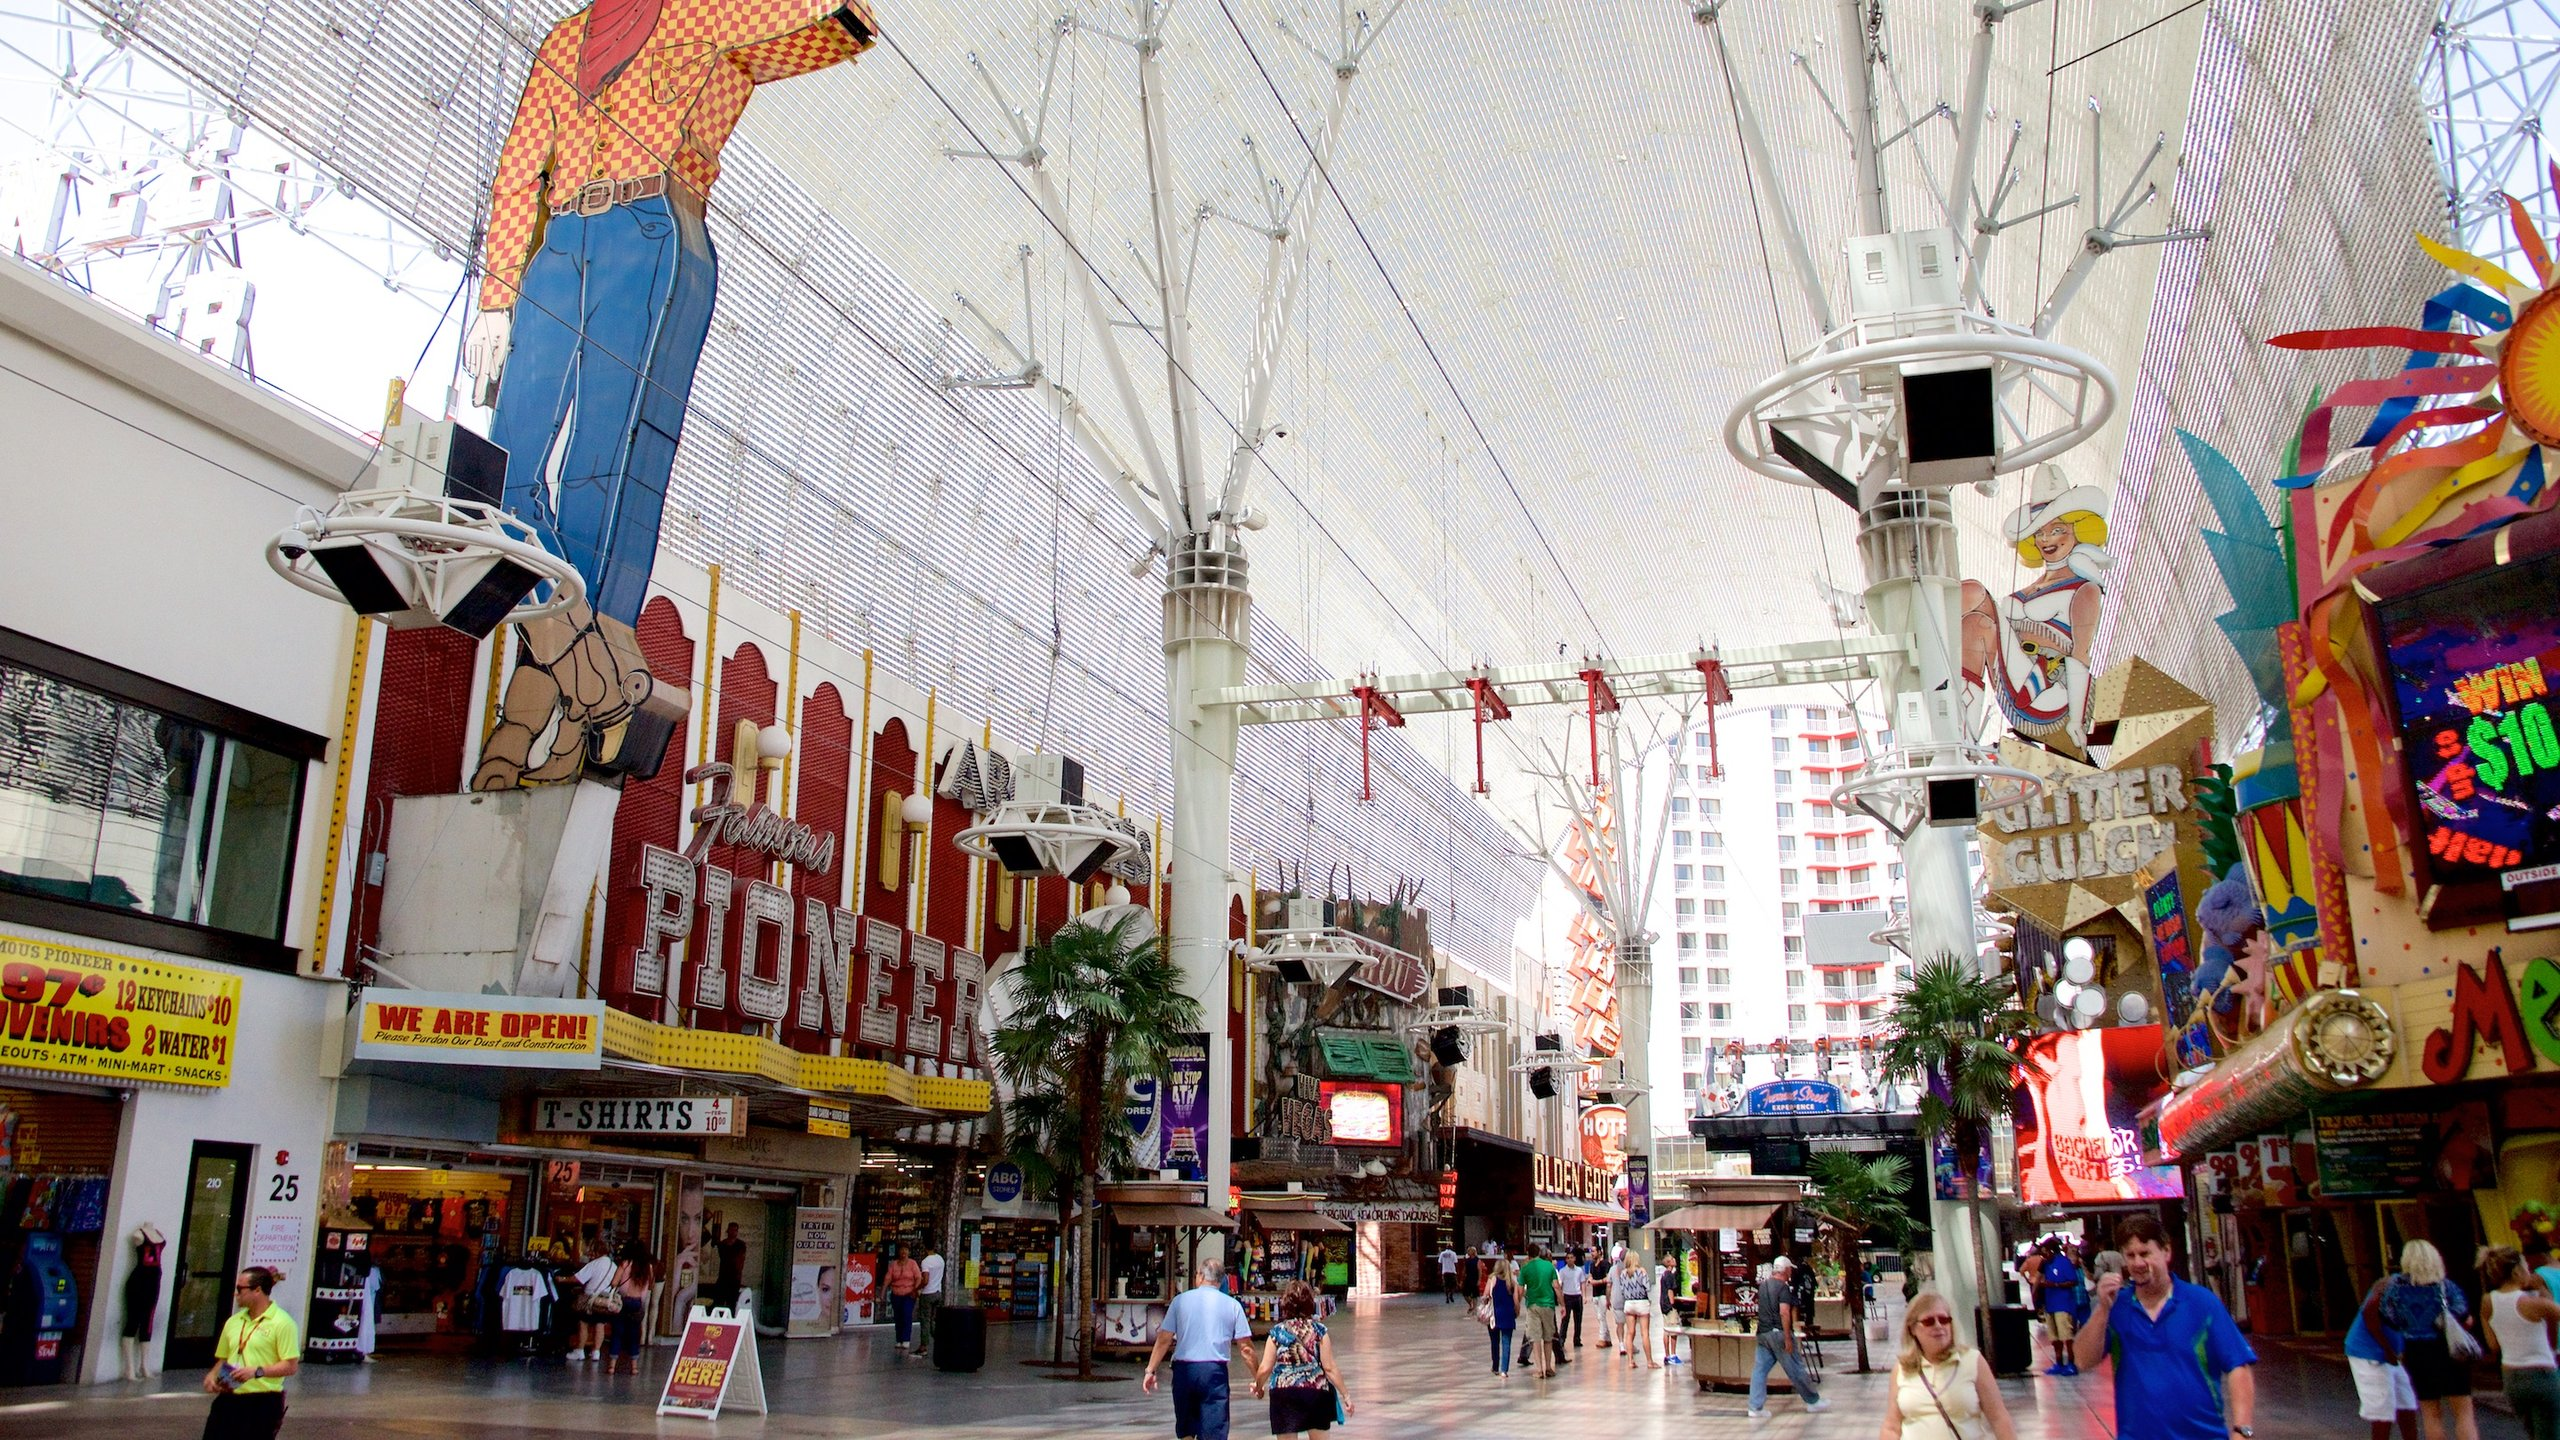 The 10 Best Hotels in Fremont Street, Las Vegas $19 for 2019 | Expedia